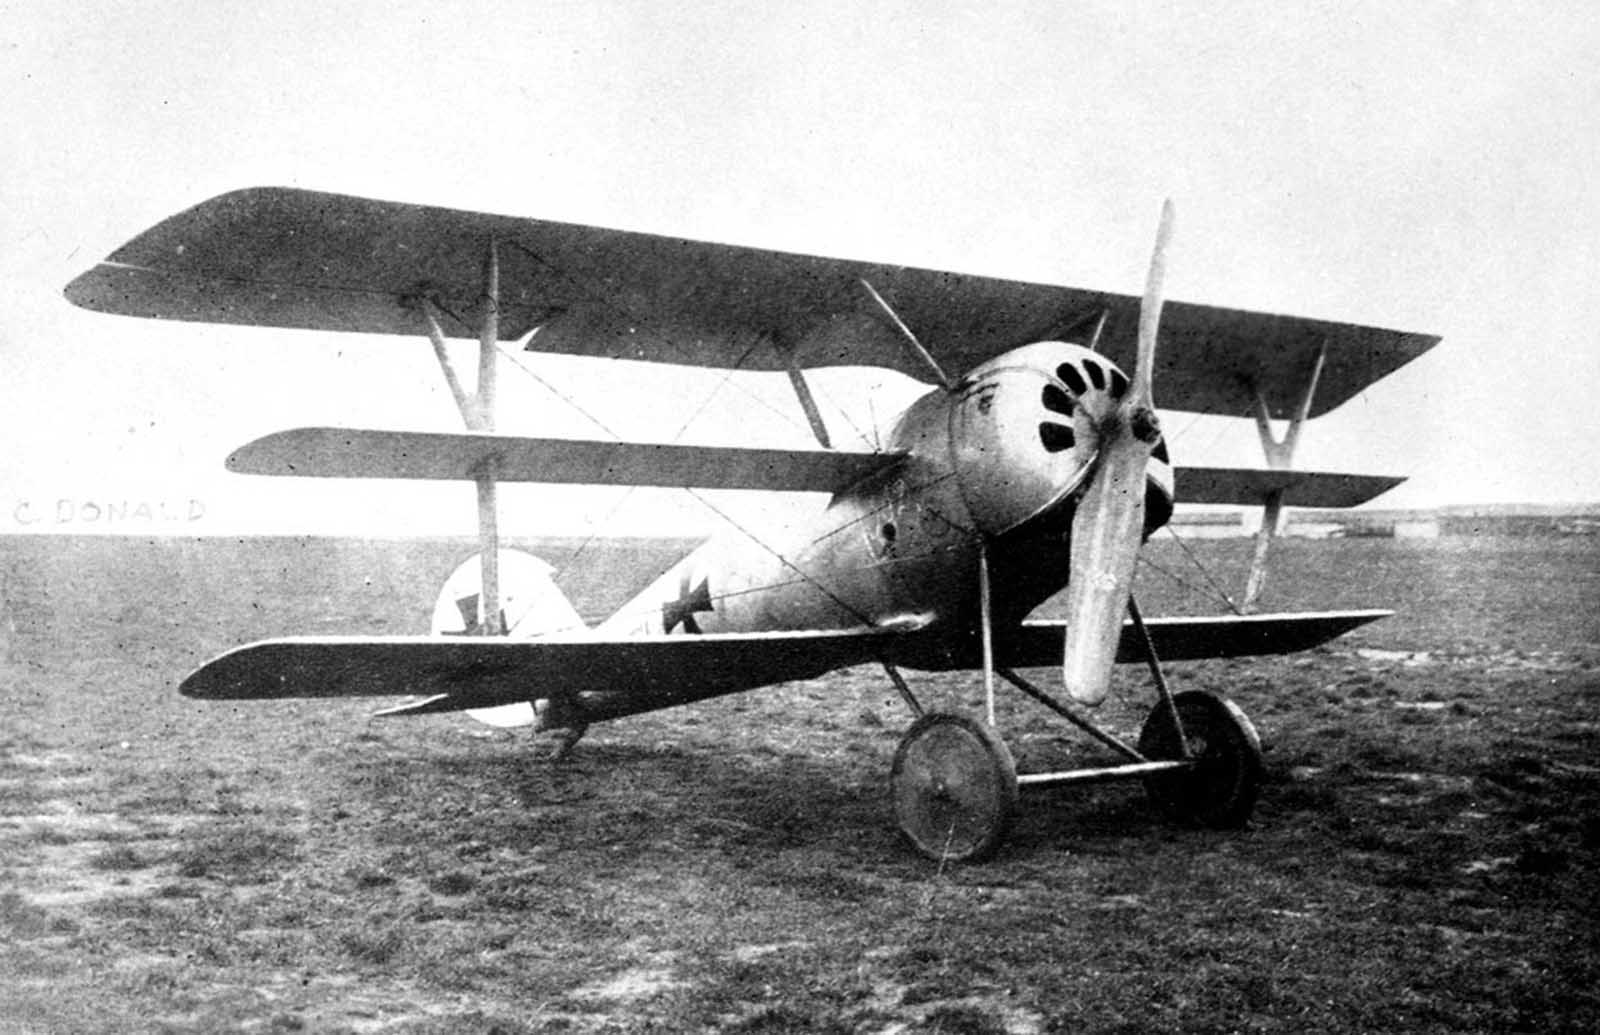 A German Pfalz Dr.I single-seat triplane fighter aircraft, ca. 1918.